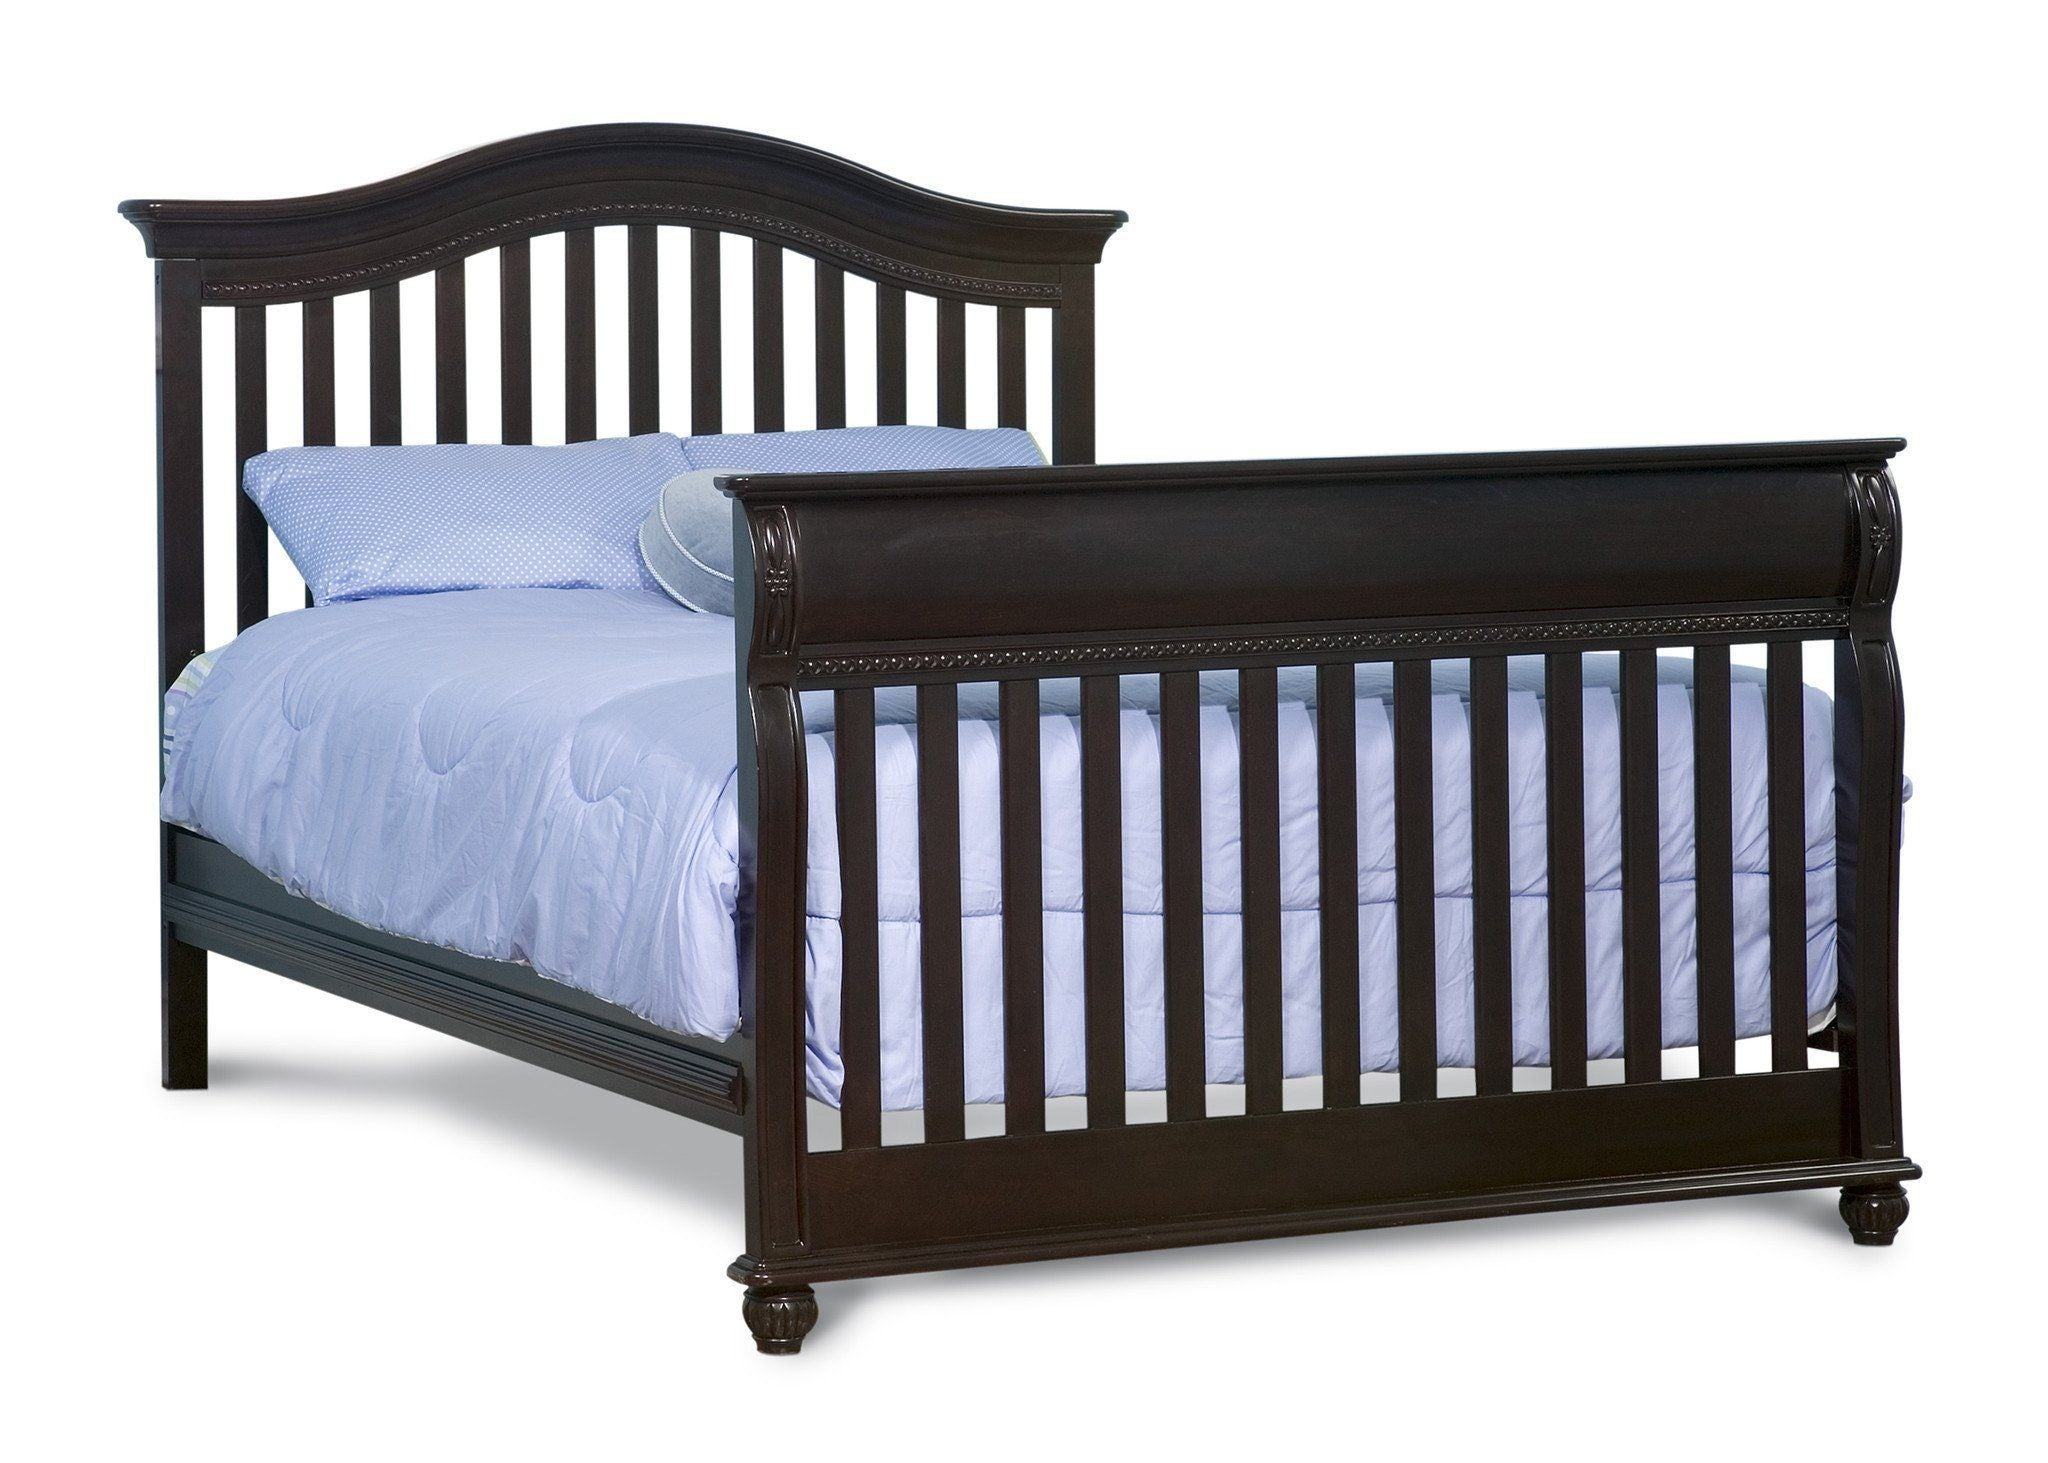 Simmons Kids LaBrosse Cherry (26) Vancouver Crib, Bed Conversion a4a